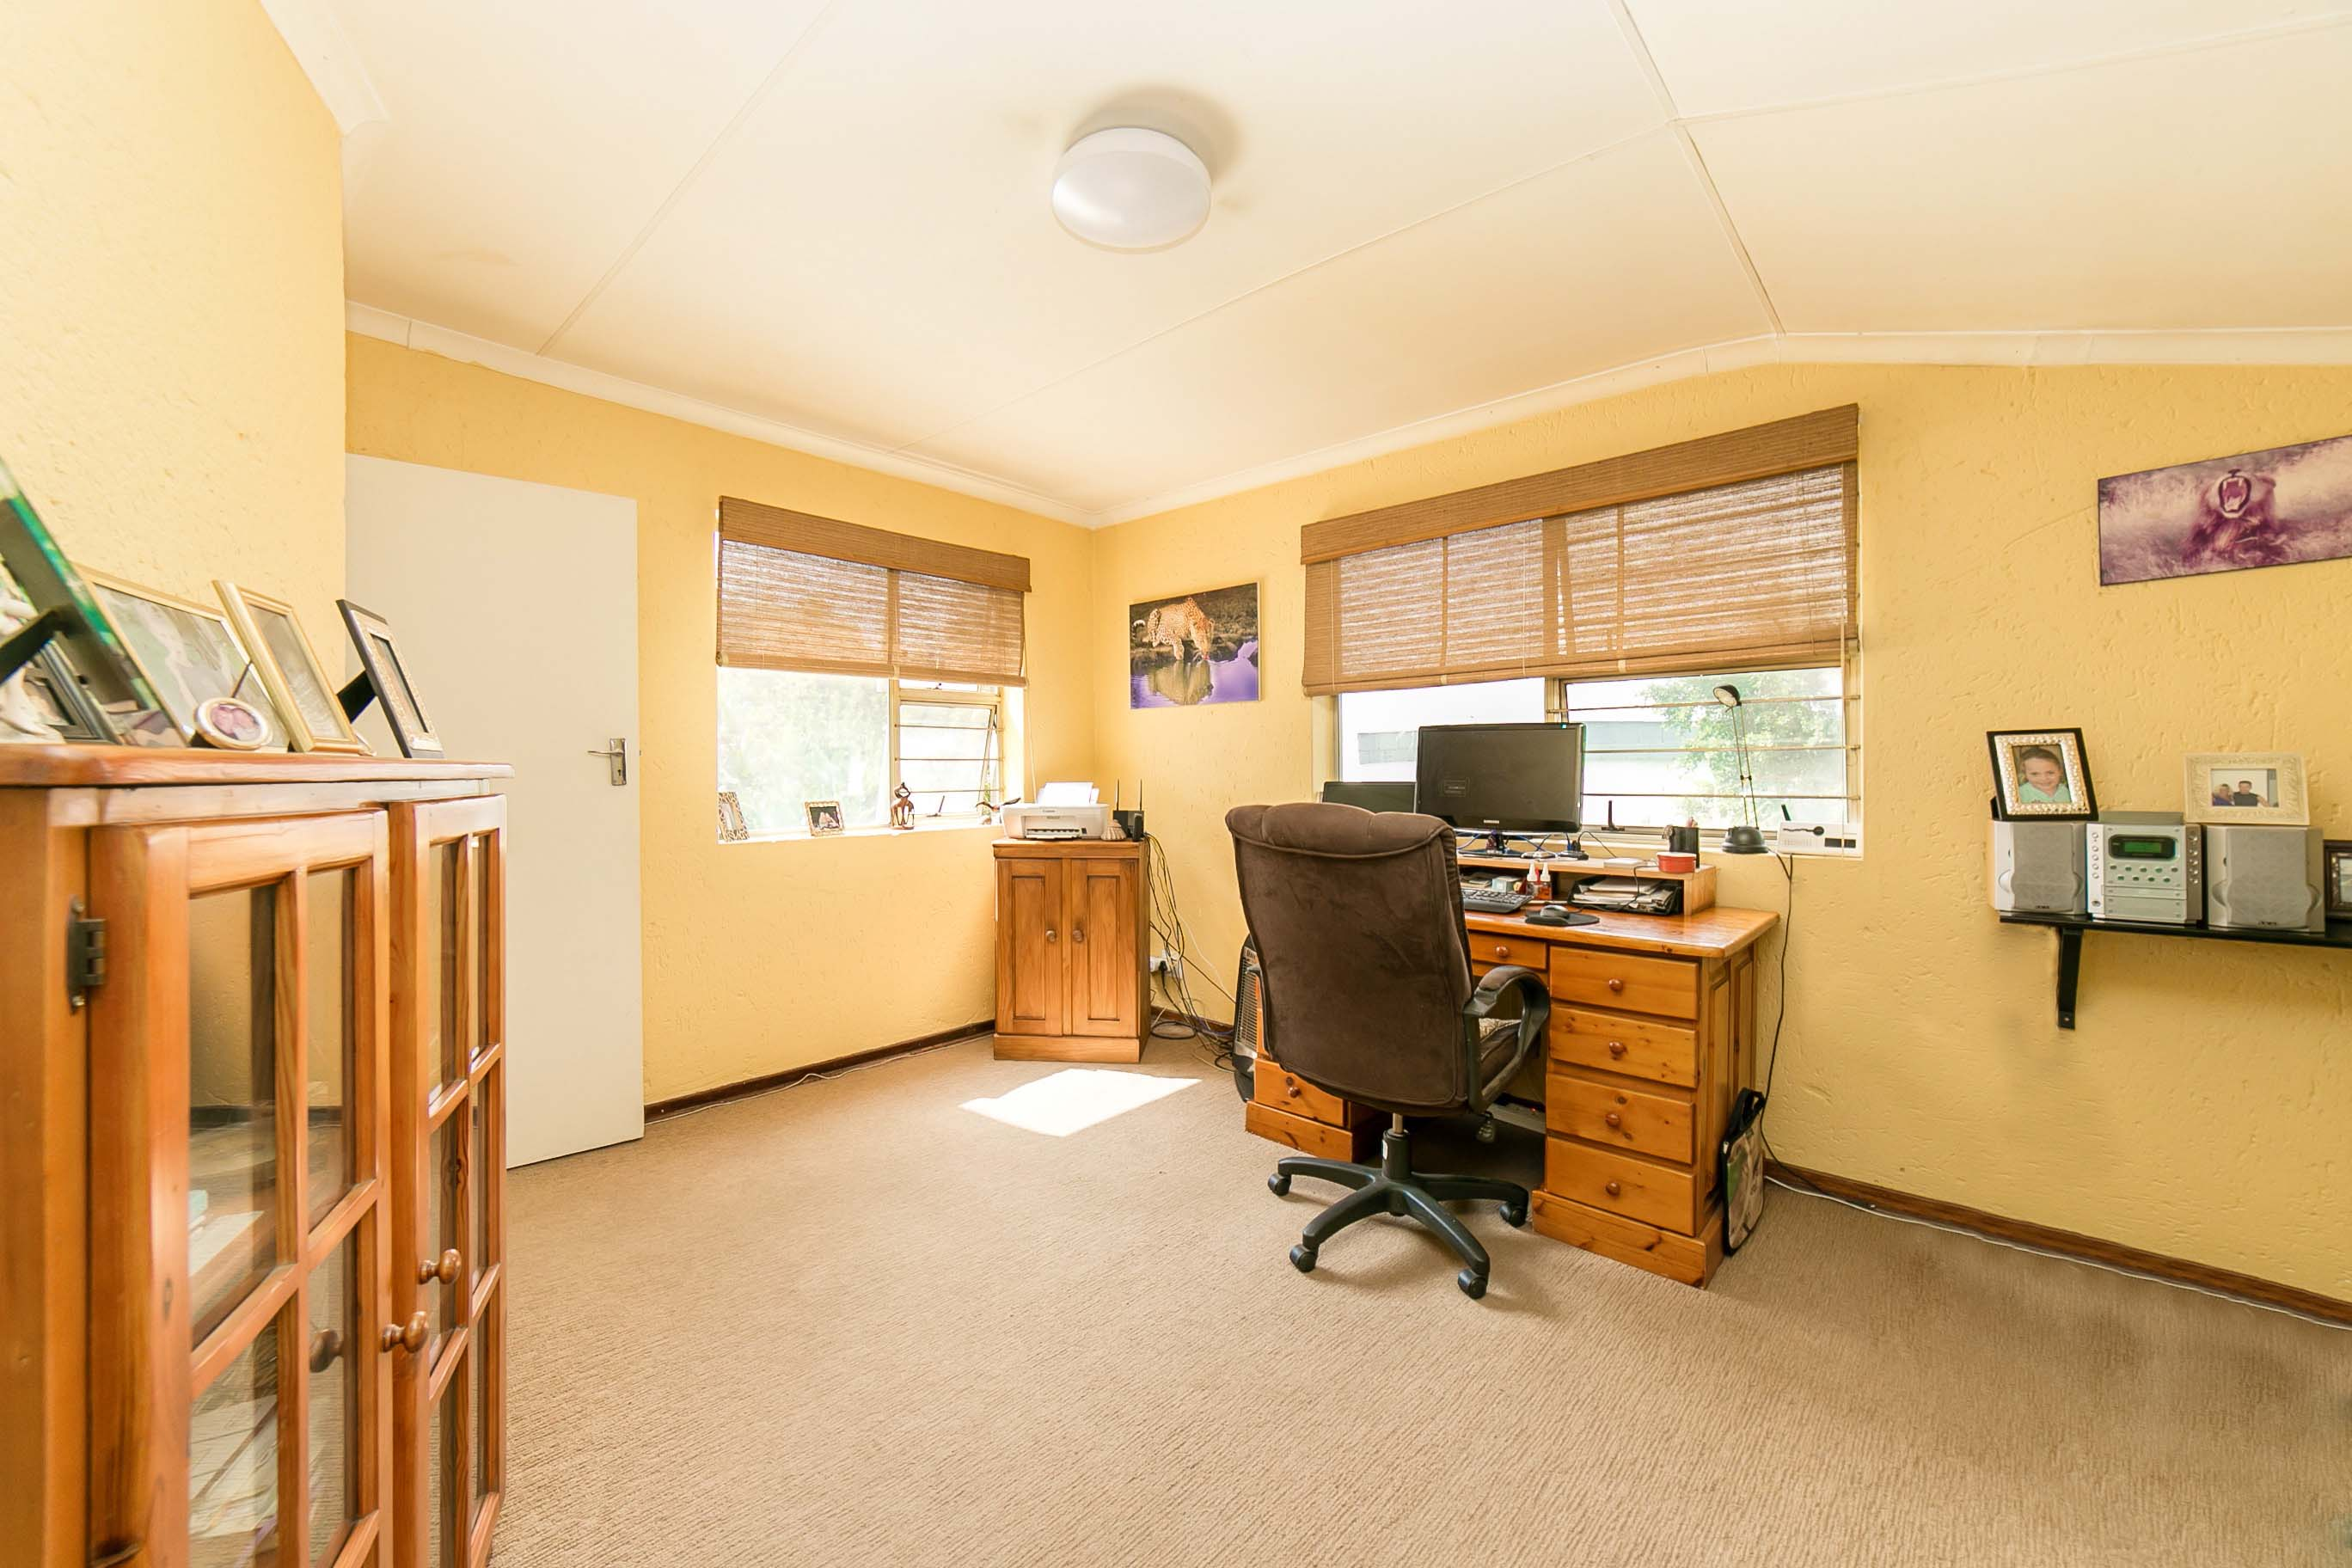 4 Bedroom House for sale in Lonehill ENT0082001 : photo#22